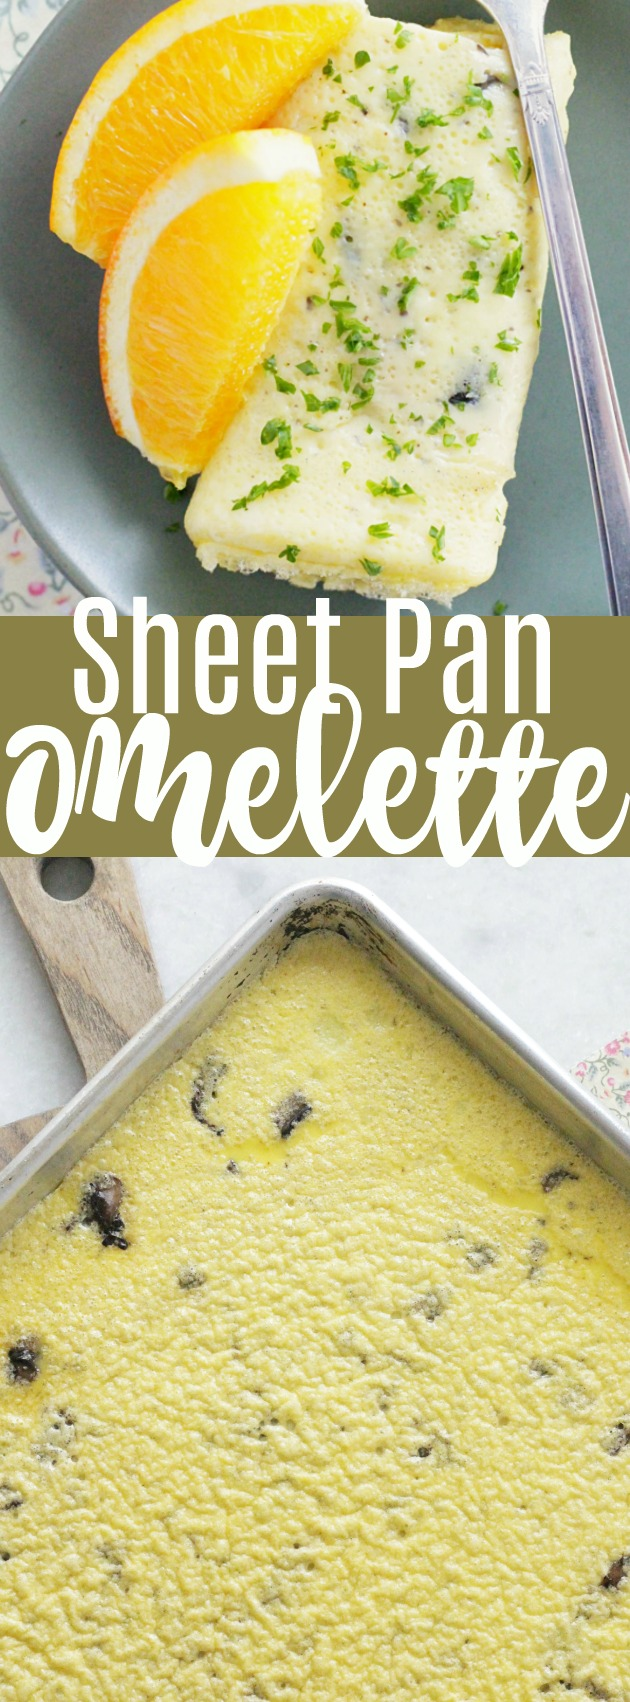 Sheet Pan Omelettes | Foodtastic Mom